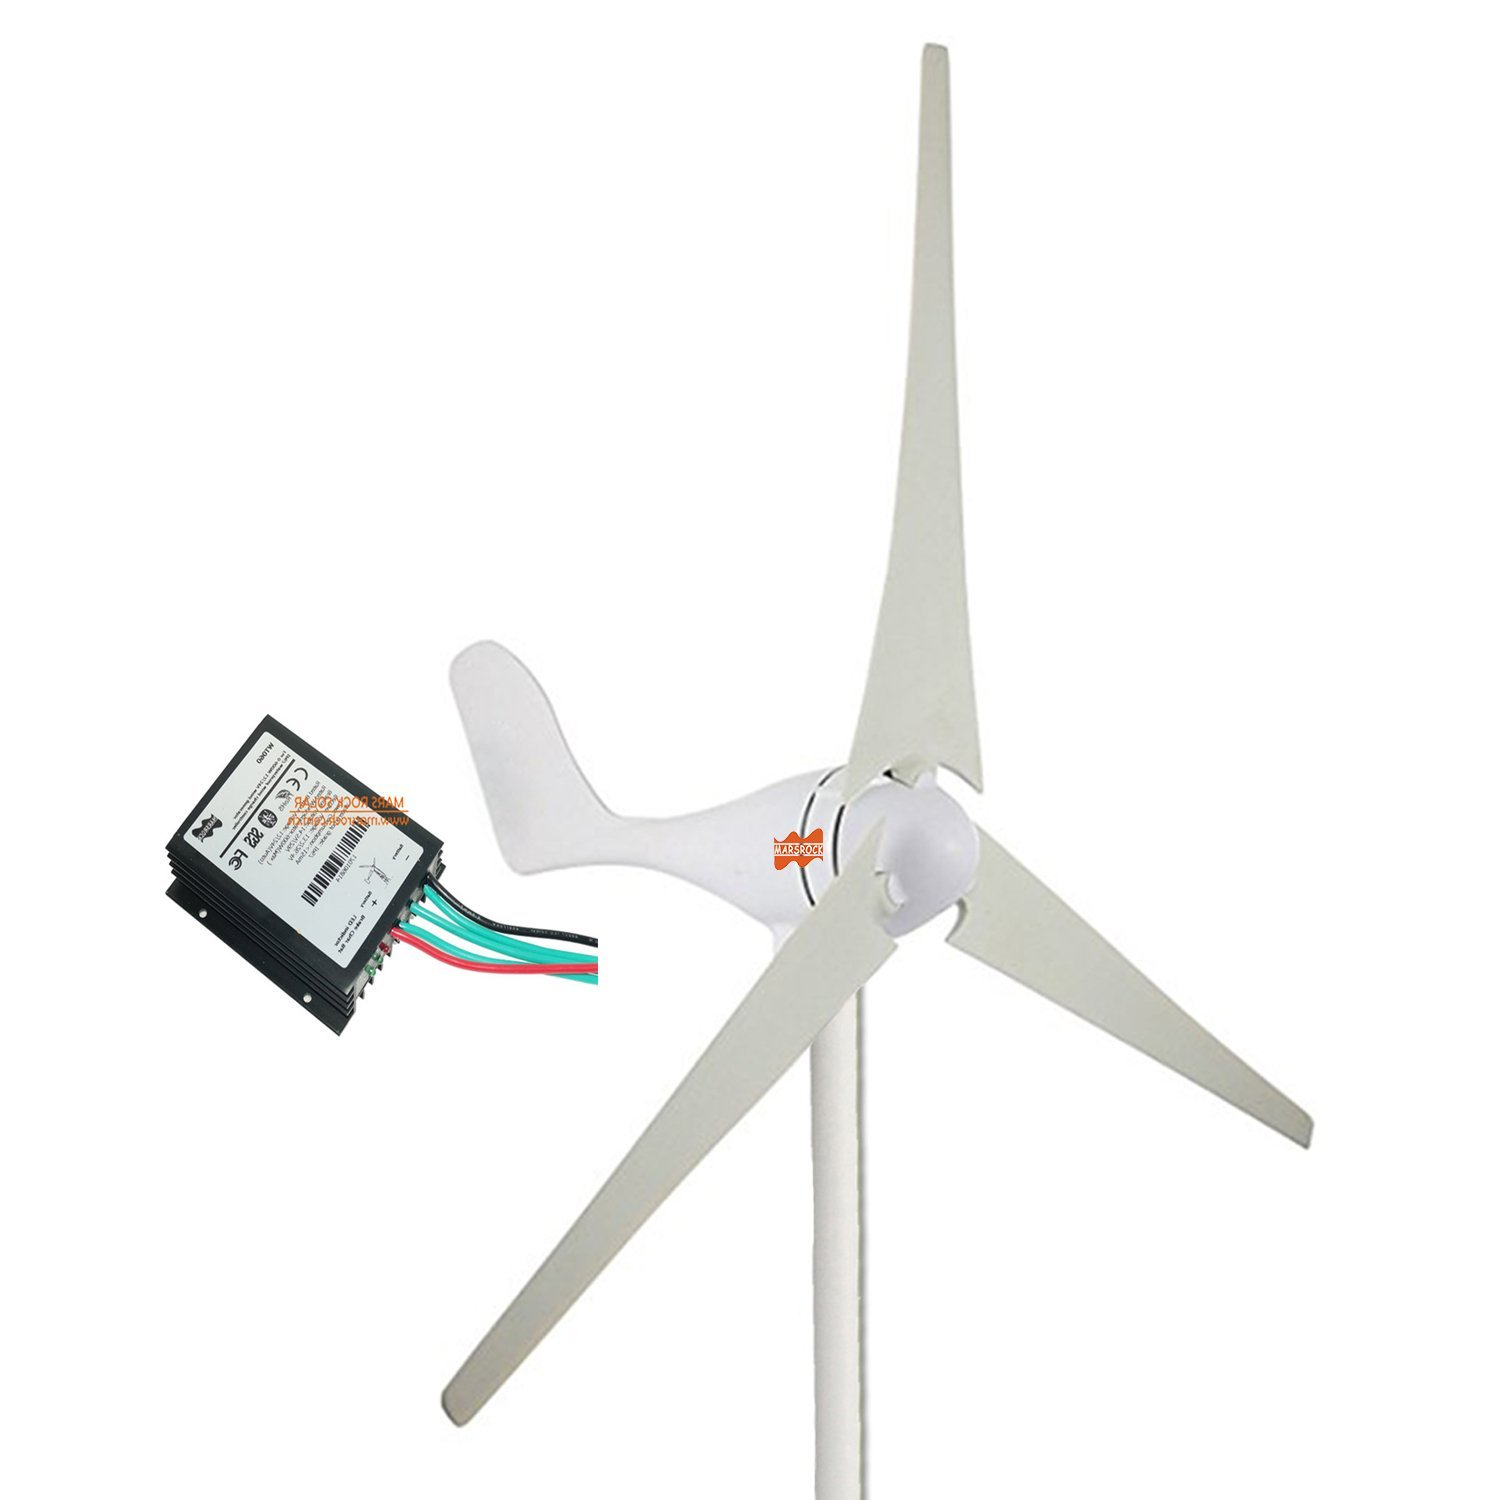 MarsRock Small Wind Turbine Generator + Wind Controller, AC 12Volt or 24Volt,400W Economy Windmill for Wind Solar Hybrid System 2m/s Start Wind Speed 3 blades (400Watt 24Volt)